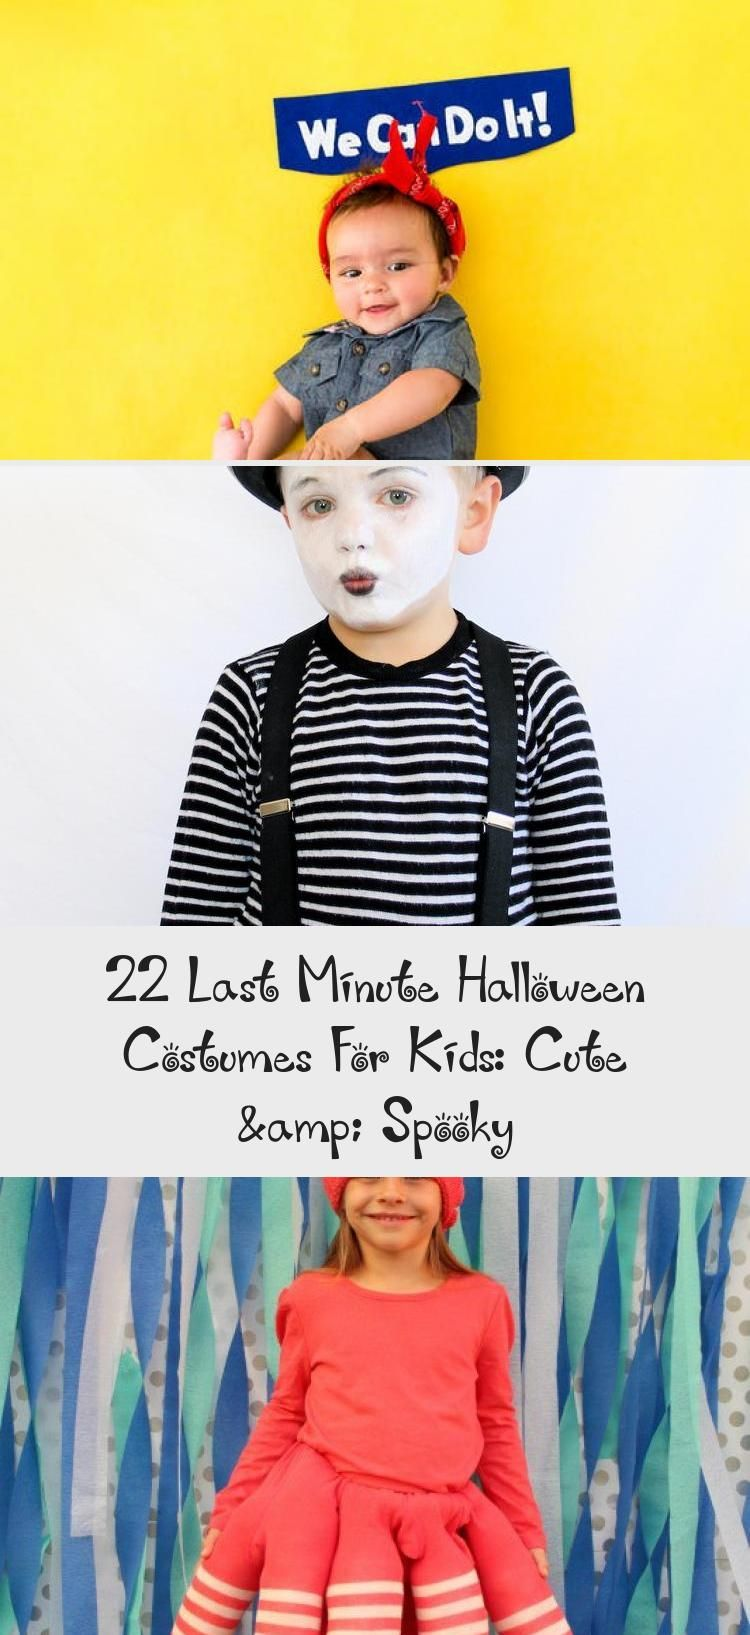 22 Last Minute Halloween Costumes For Kids: Cute & Spooky - OUTFIT #spookyoutfits